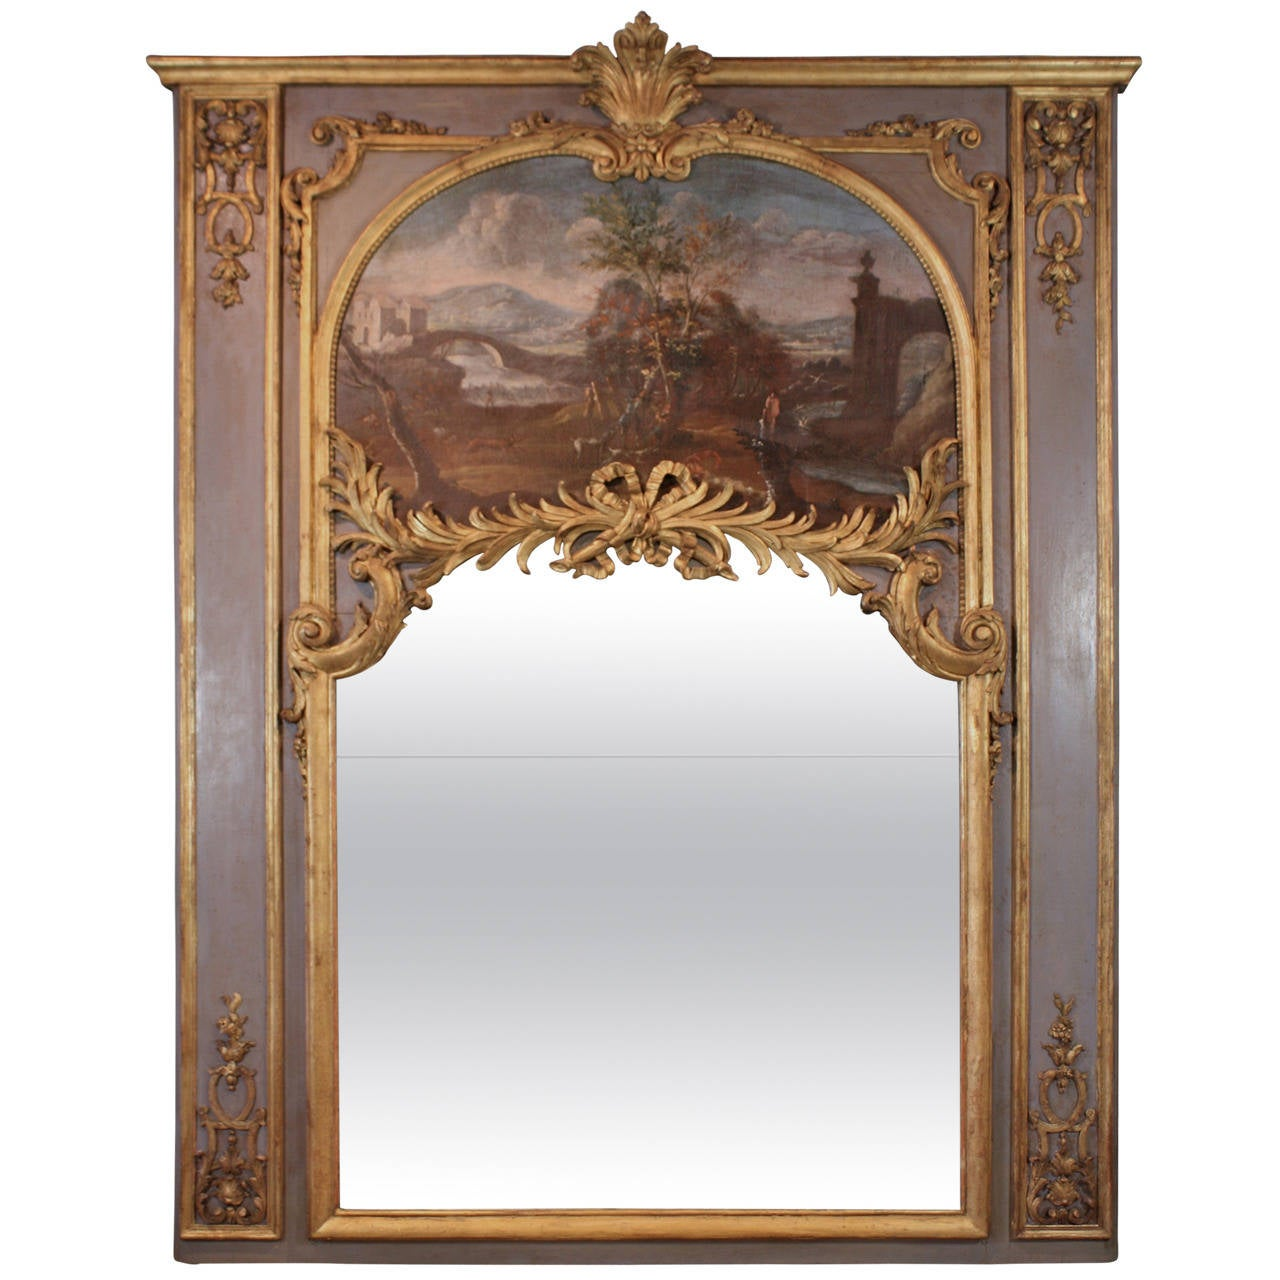 Impressive Louis XVI Period Trumeau Mirror For Sale